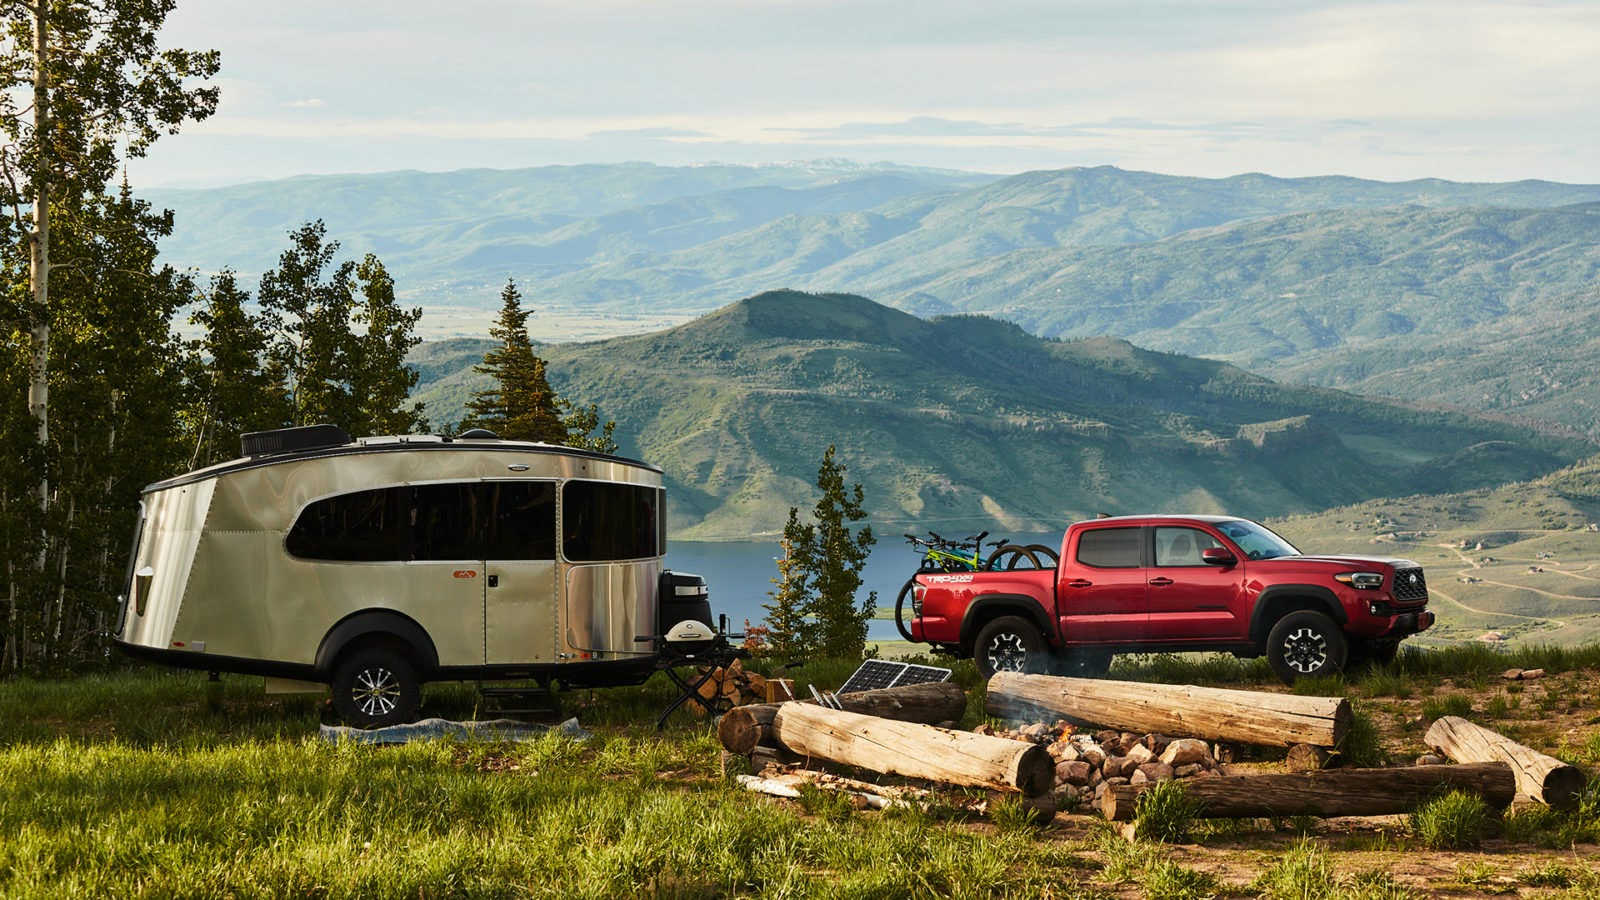 Airstream Basecamp 20 with truck in mountains